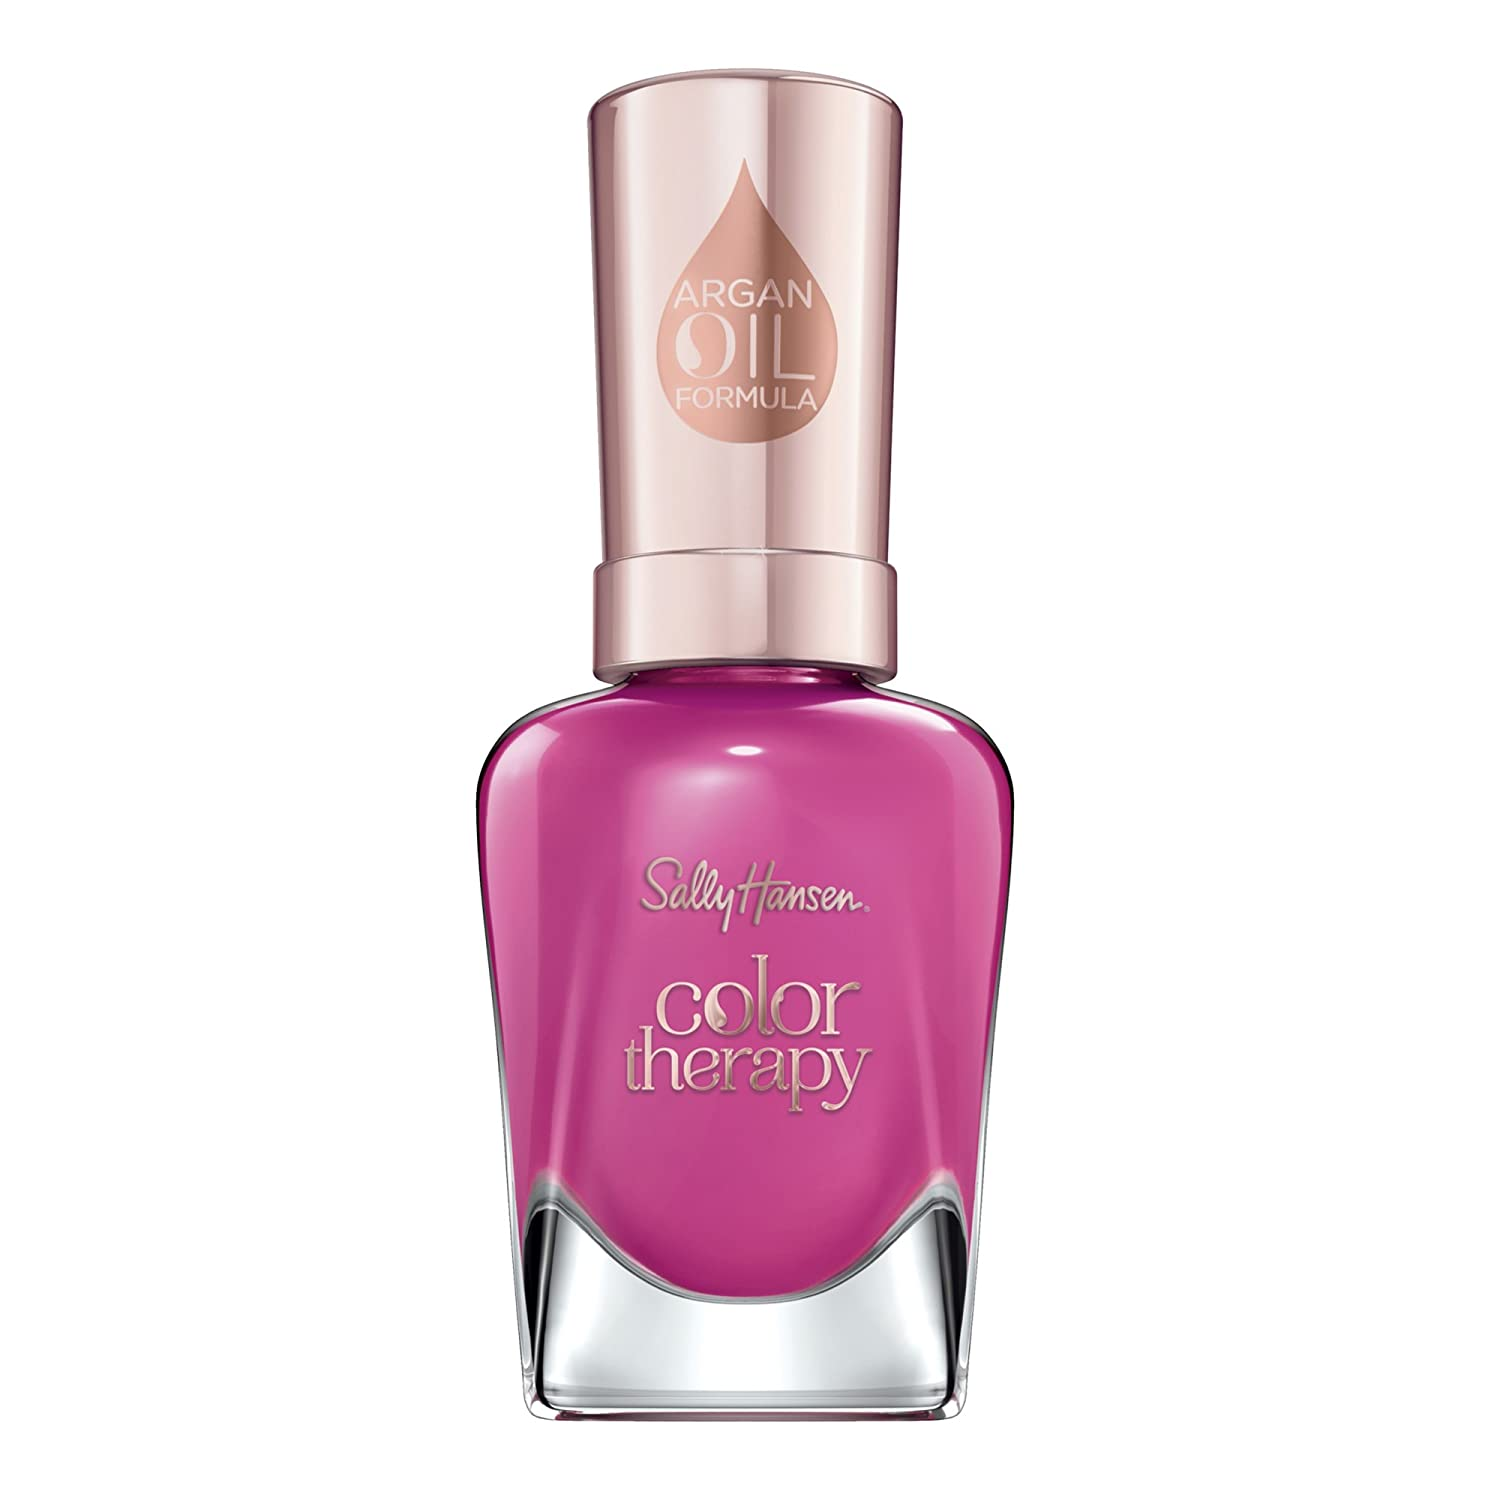 Sally Hansen - Color Therapy Nail Color, Pinks Coty 30334915290